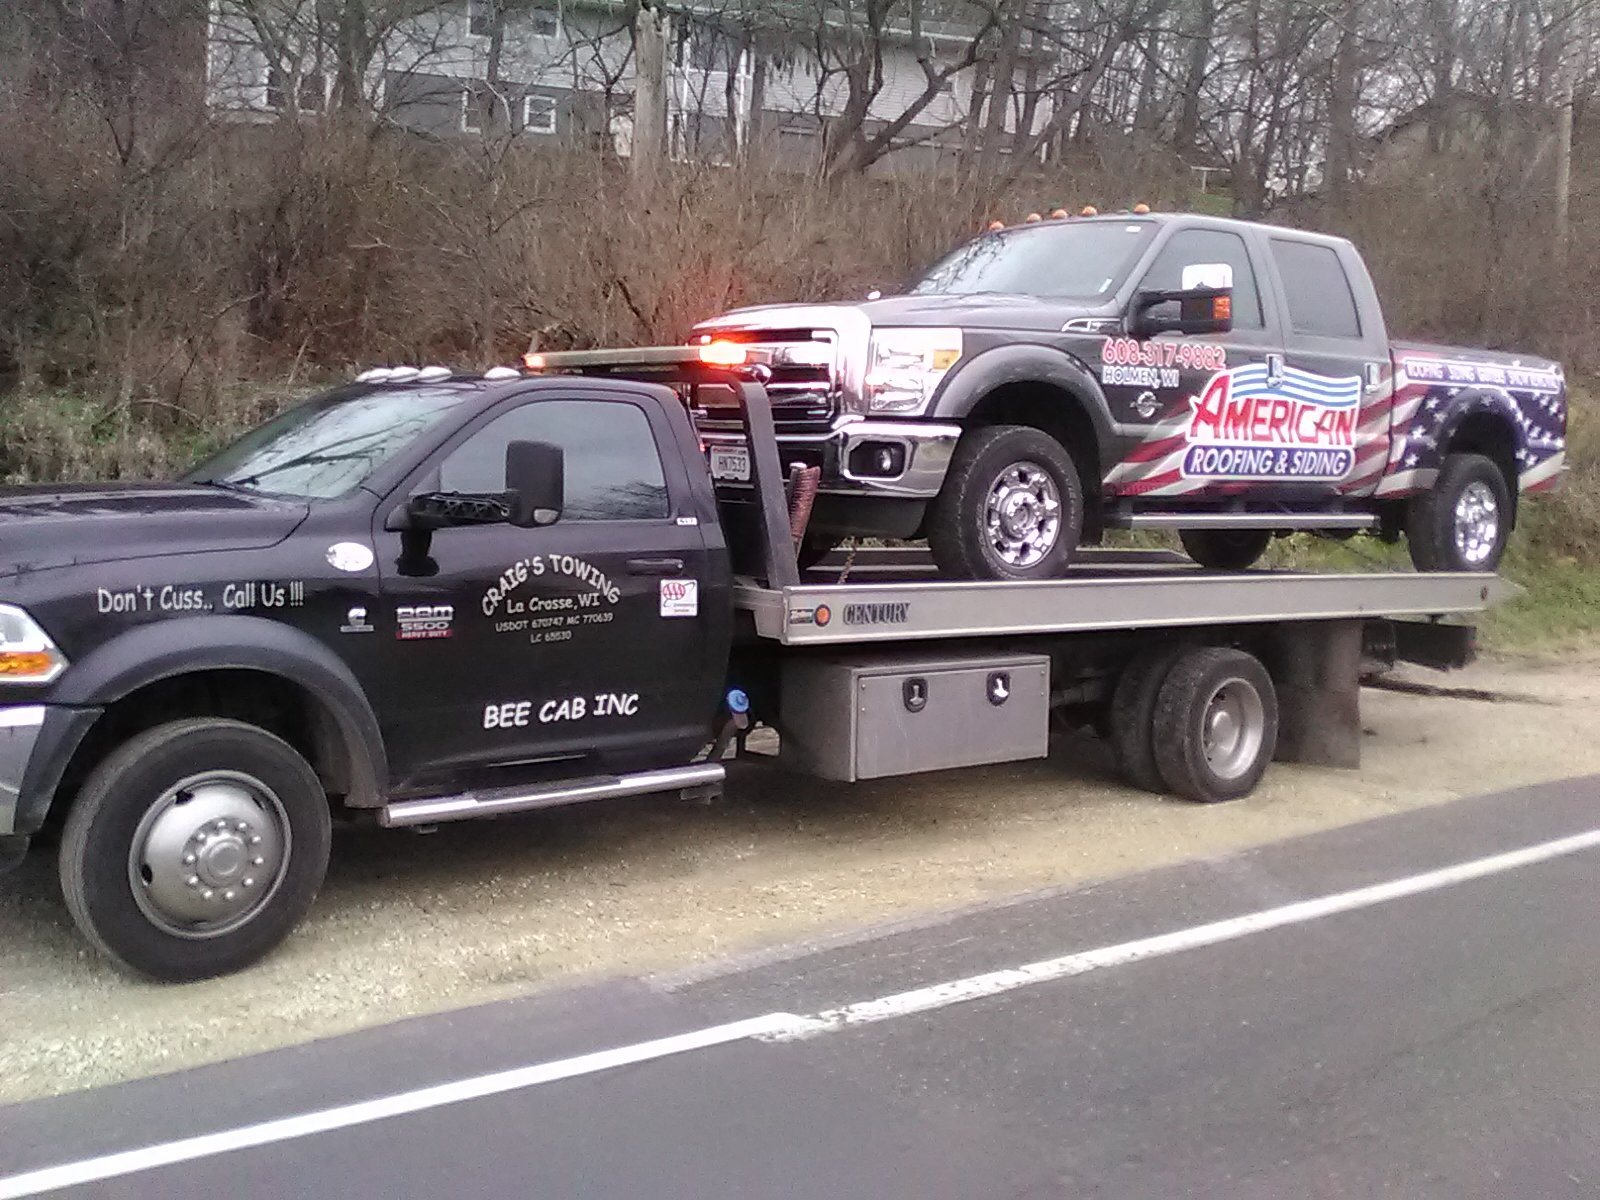 Tow truck towing a broken fleet vehicle